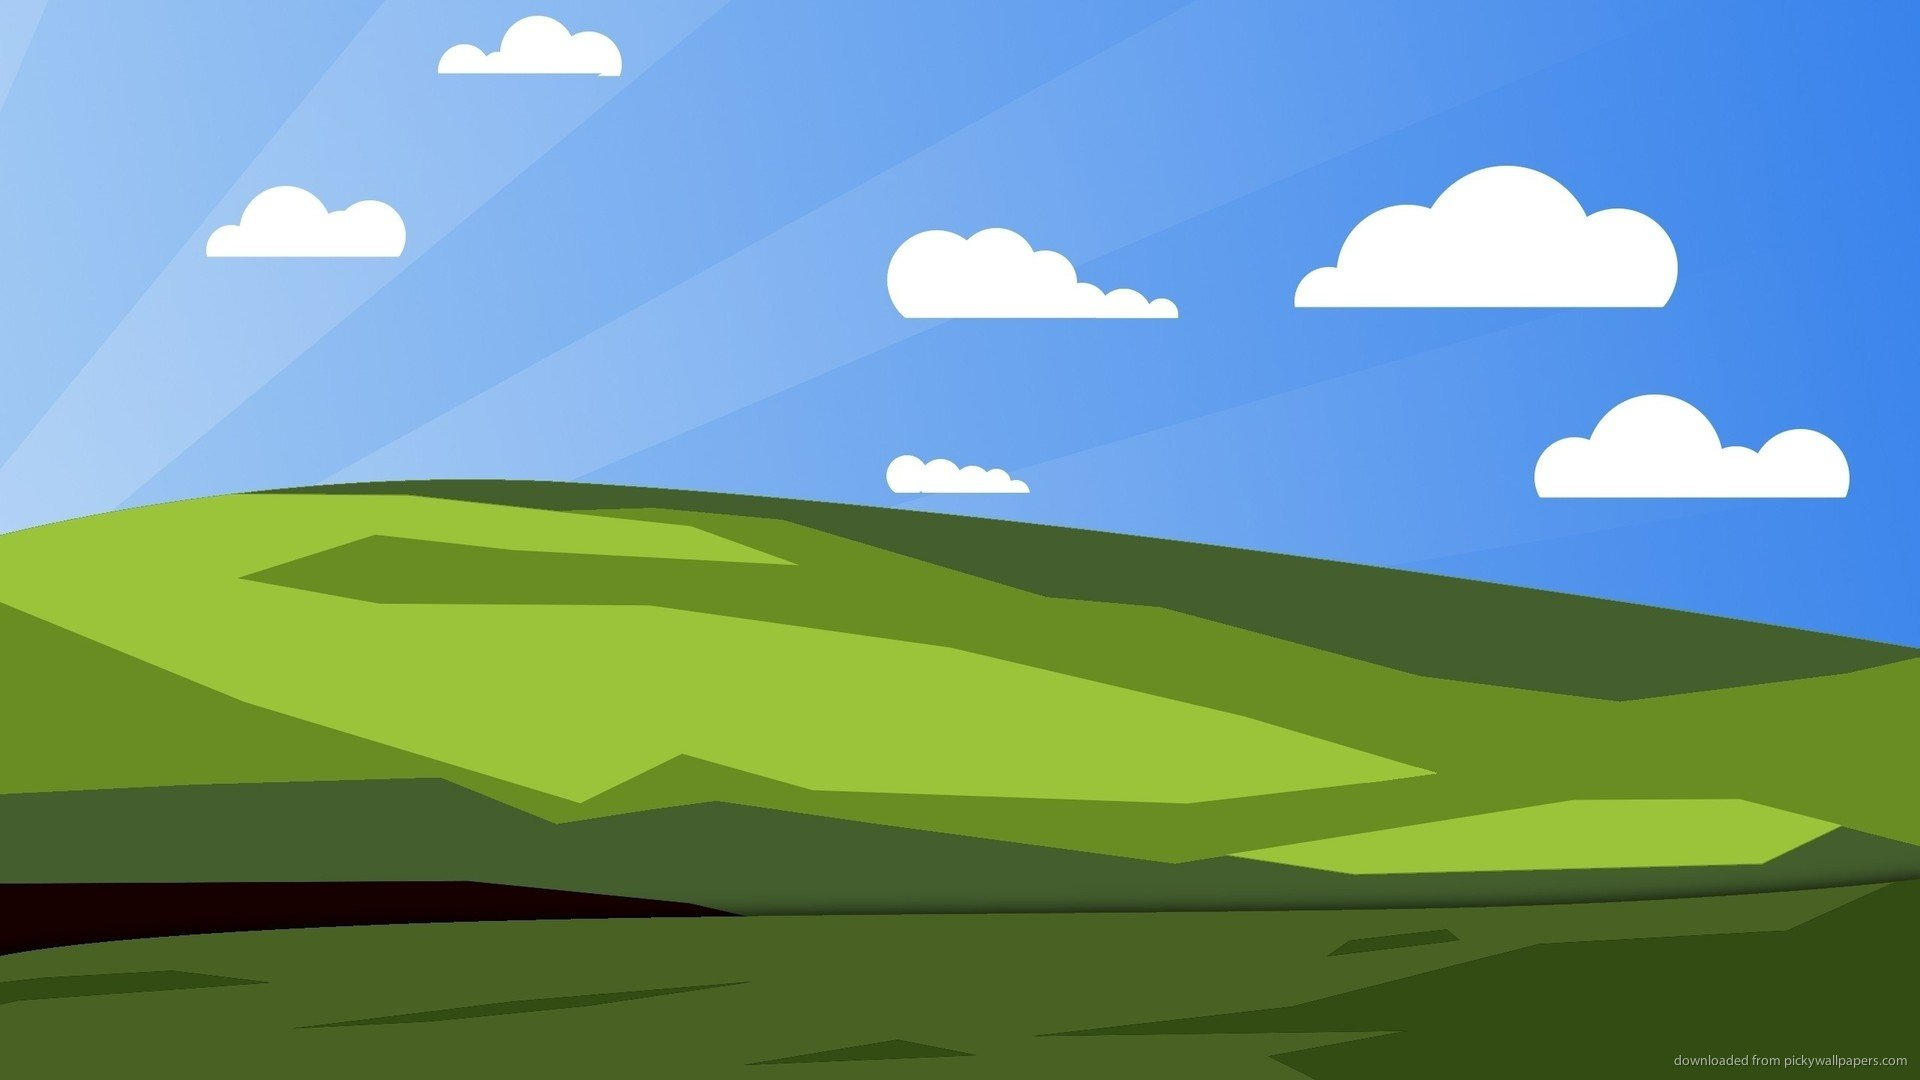 Windows Xp Wallpapers Hd For Desktop Backgrounds